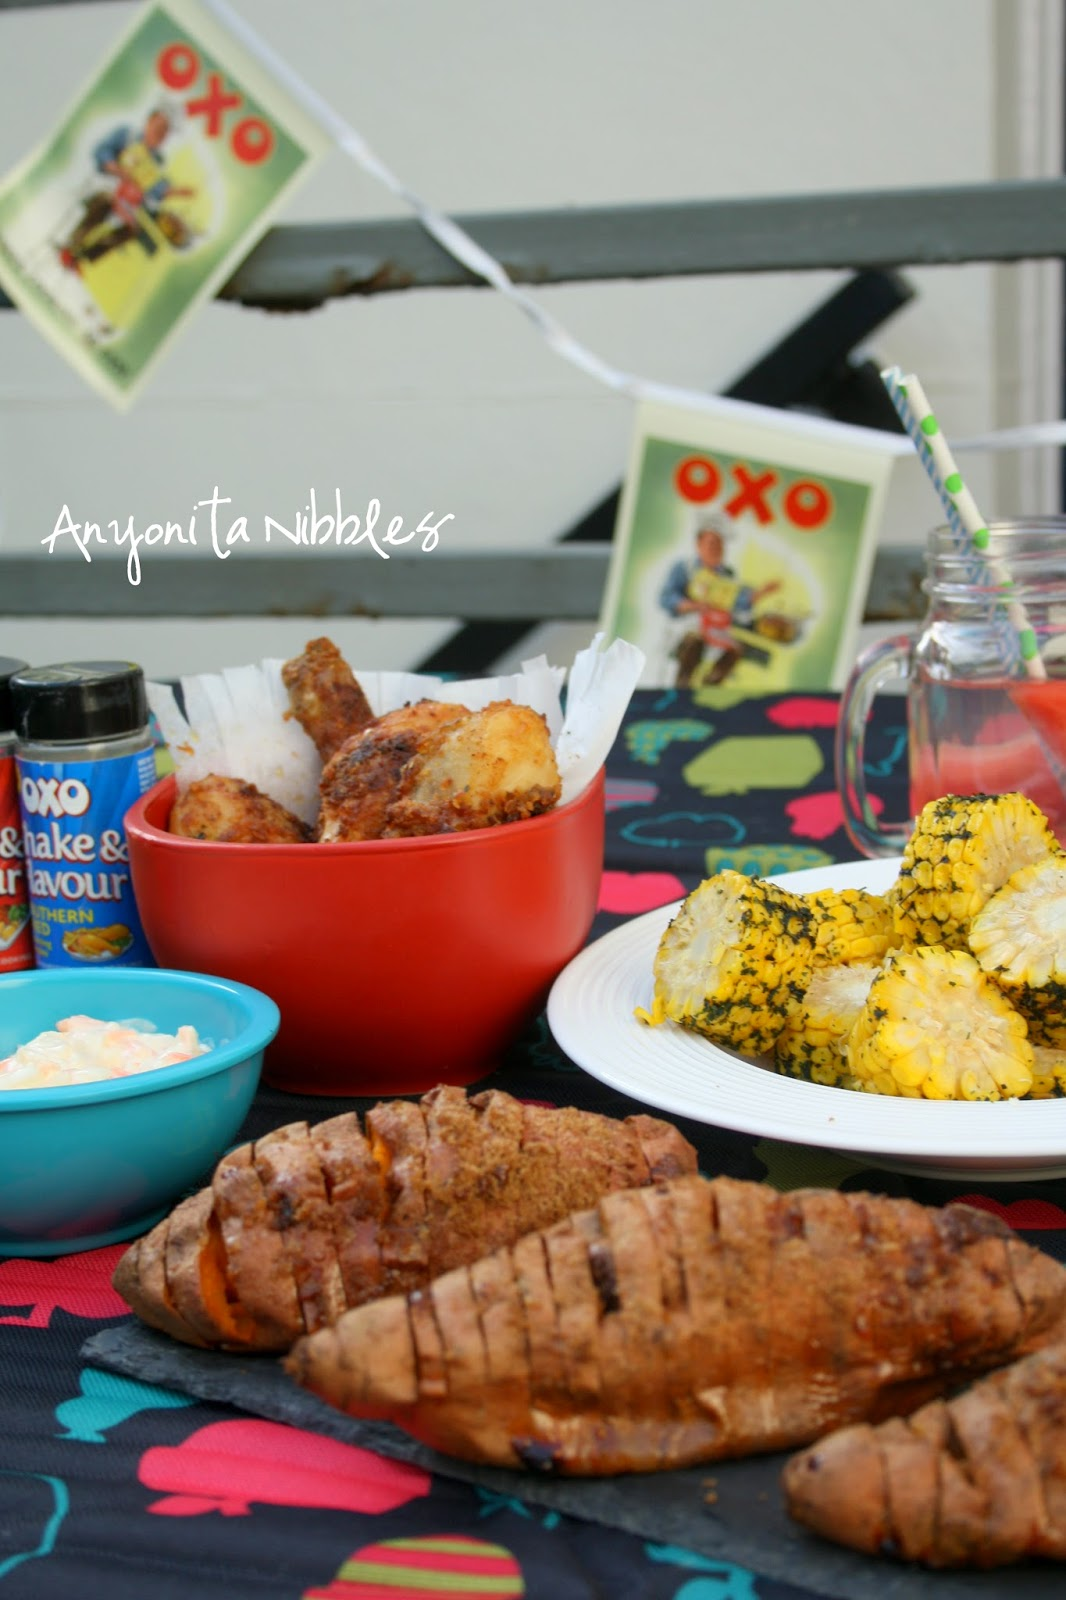 Rainy Day Barbecue Spread from Anyonita Nibbles